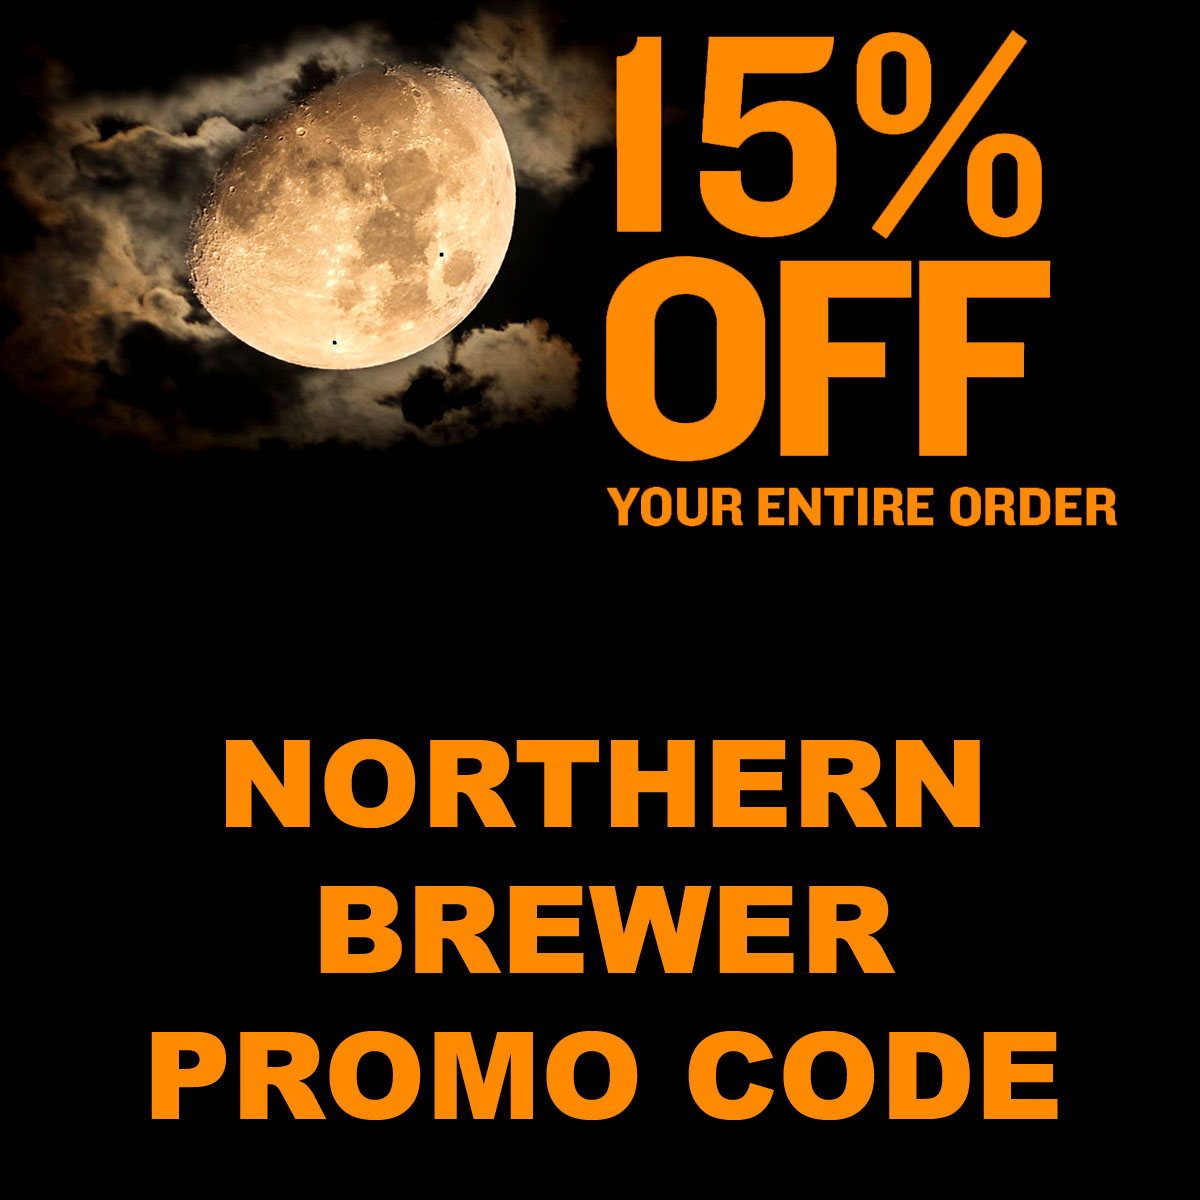 Northern Brewer Save 15% Site Wide at Northern Brewer With This Northern Brewer Promo Code Coupon Code